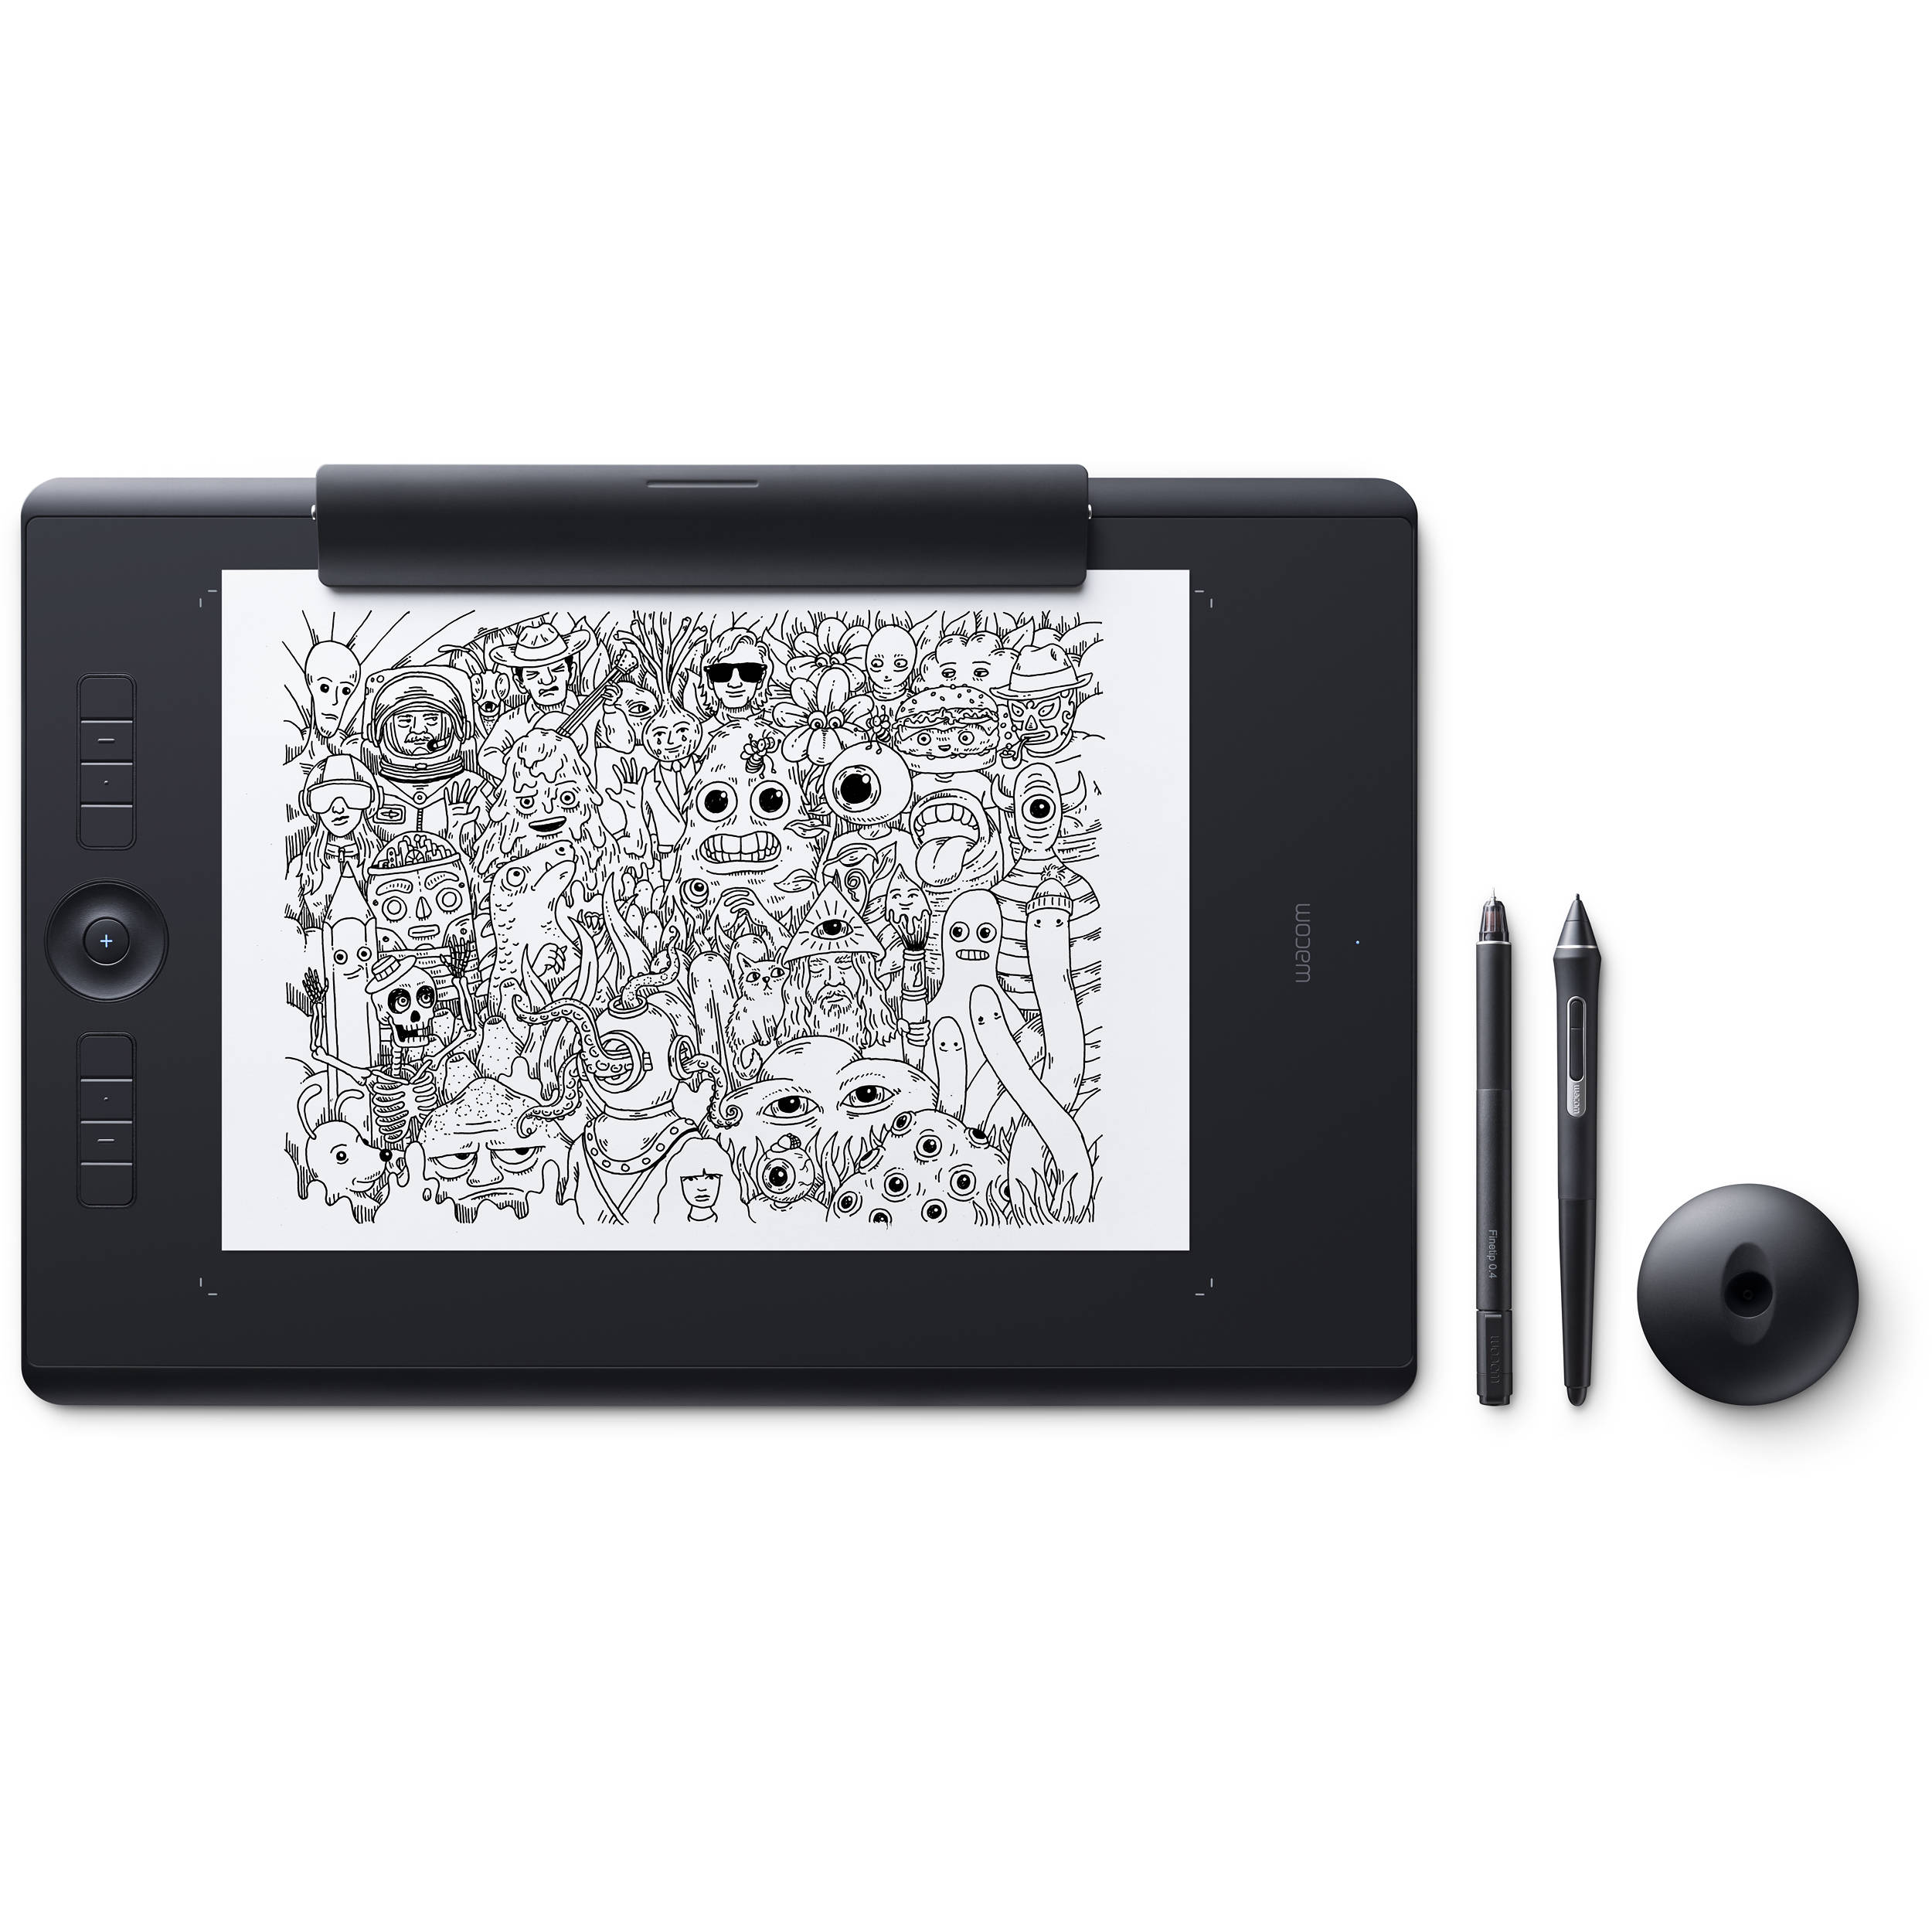 Wacom Tablet Drivers for Mac Download